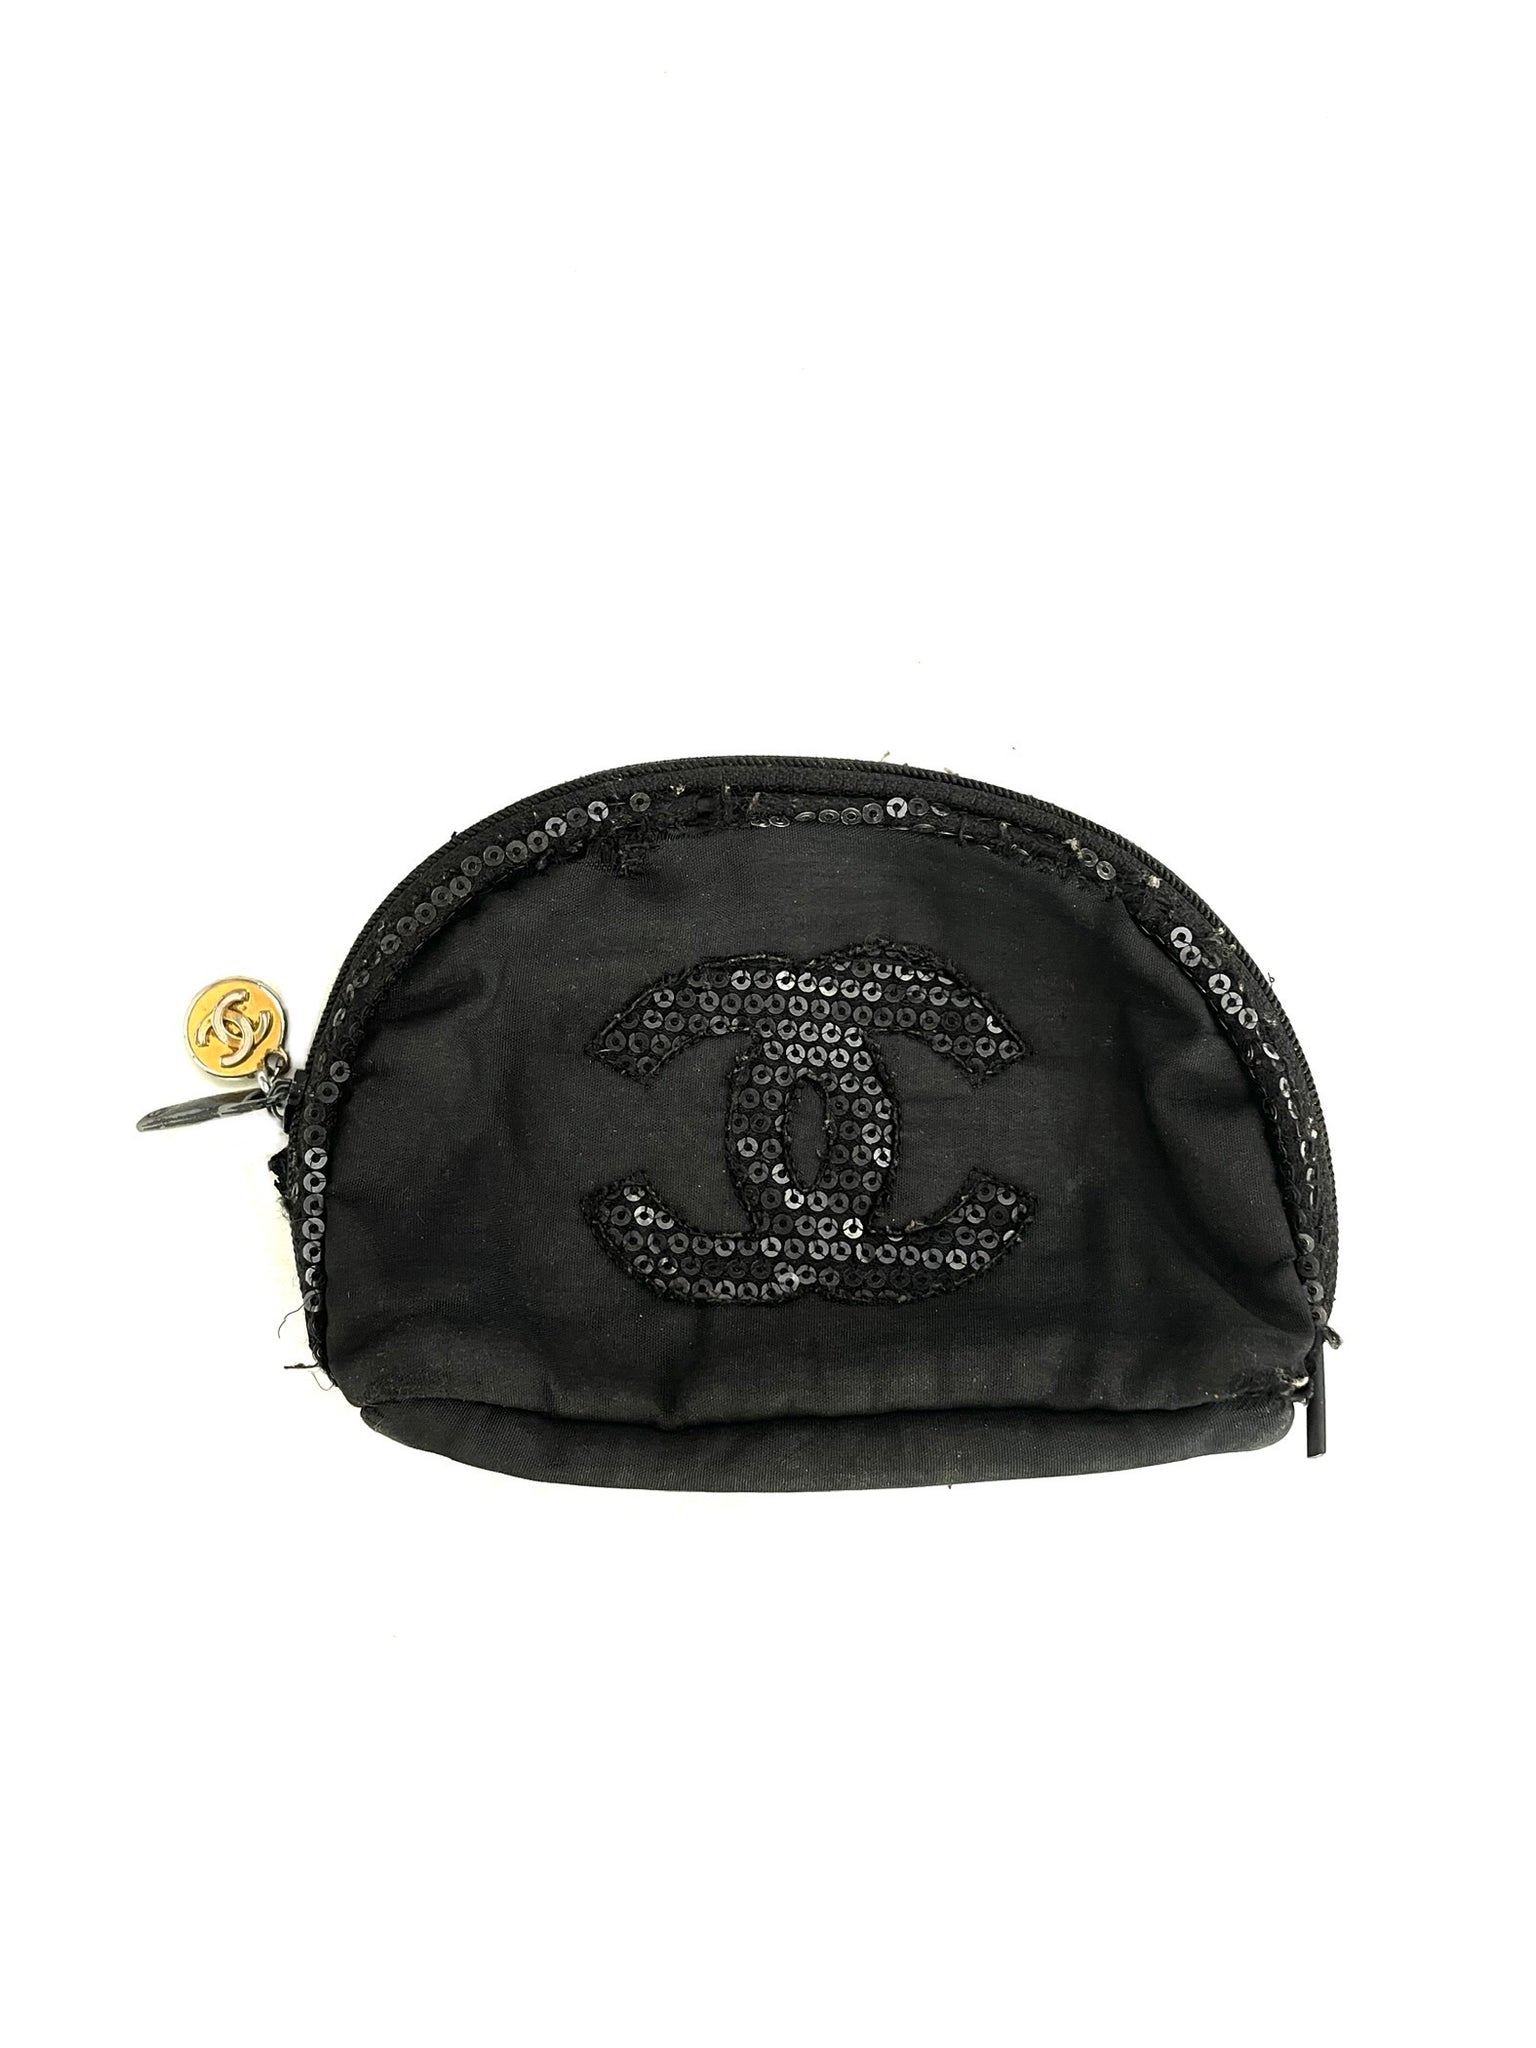 Chanel Mini Cosmetic Pouch